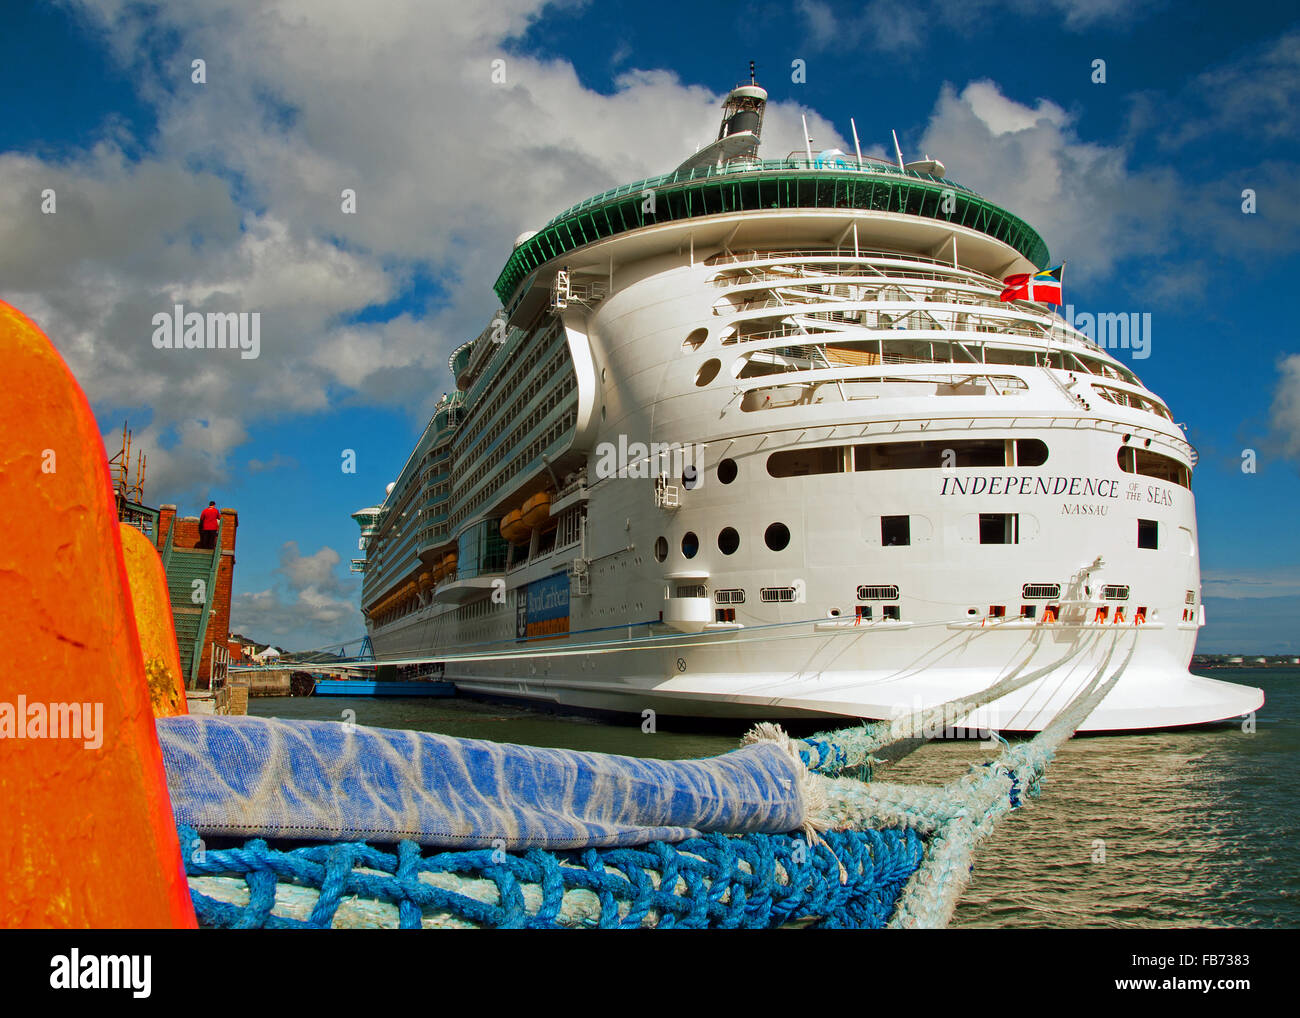 Cruise liner 'Independence of the Seas' moored at Cobh Cruise Terminal, Ireland. - Stock Image